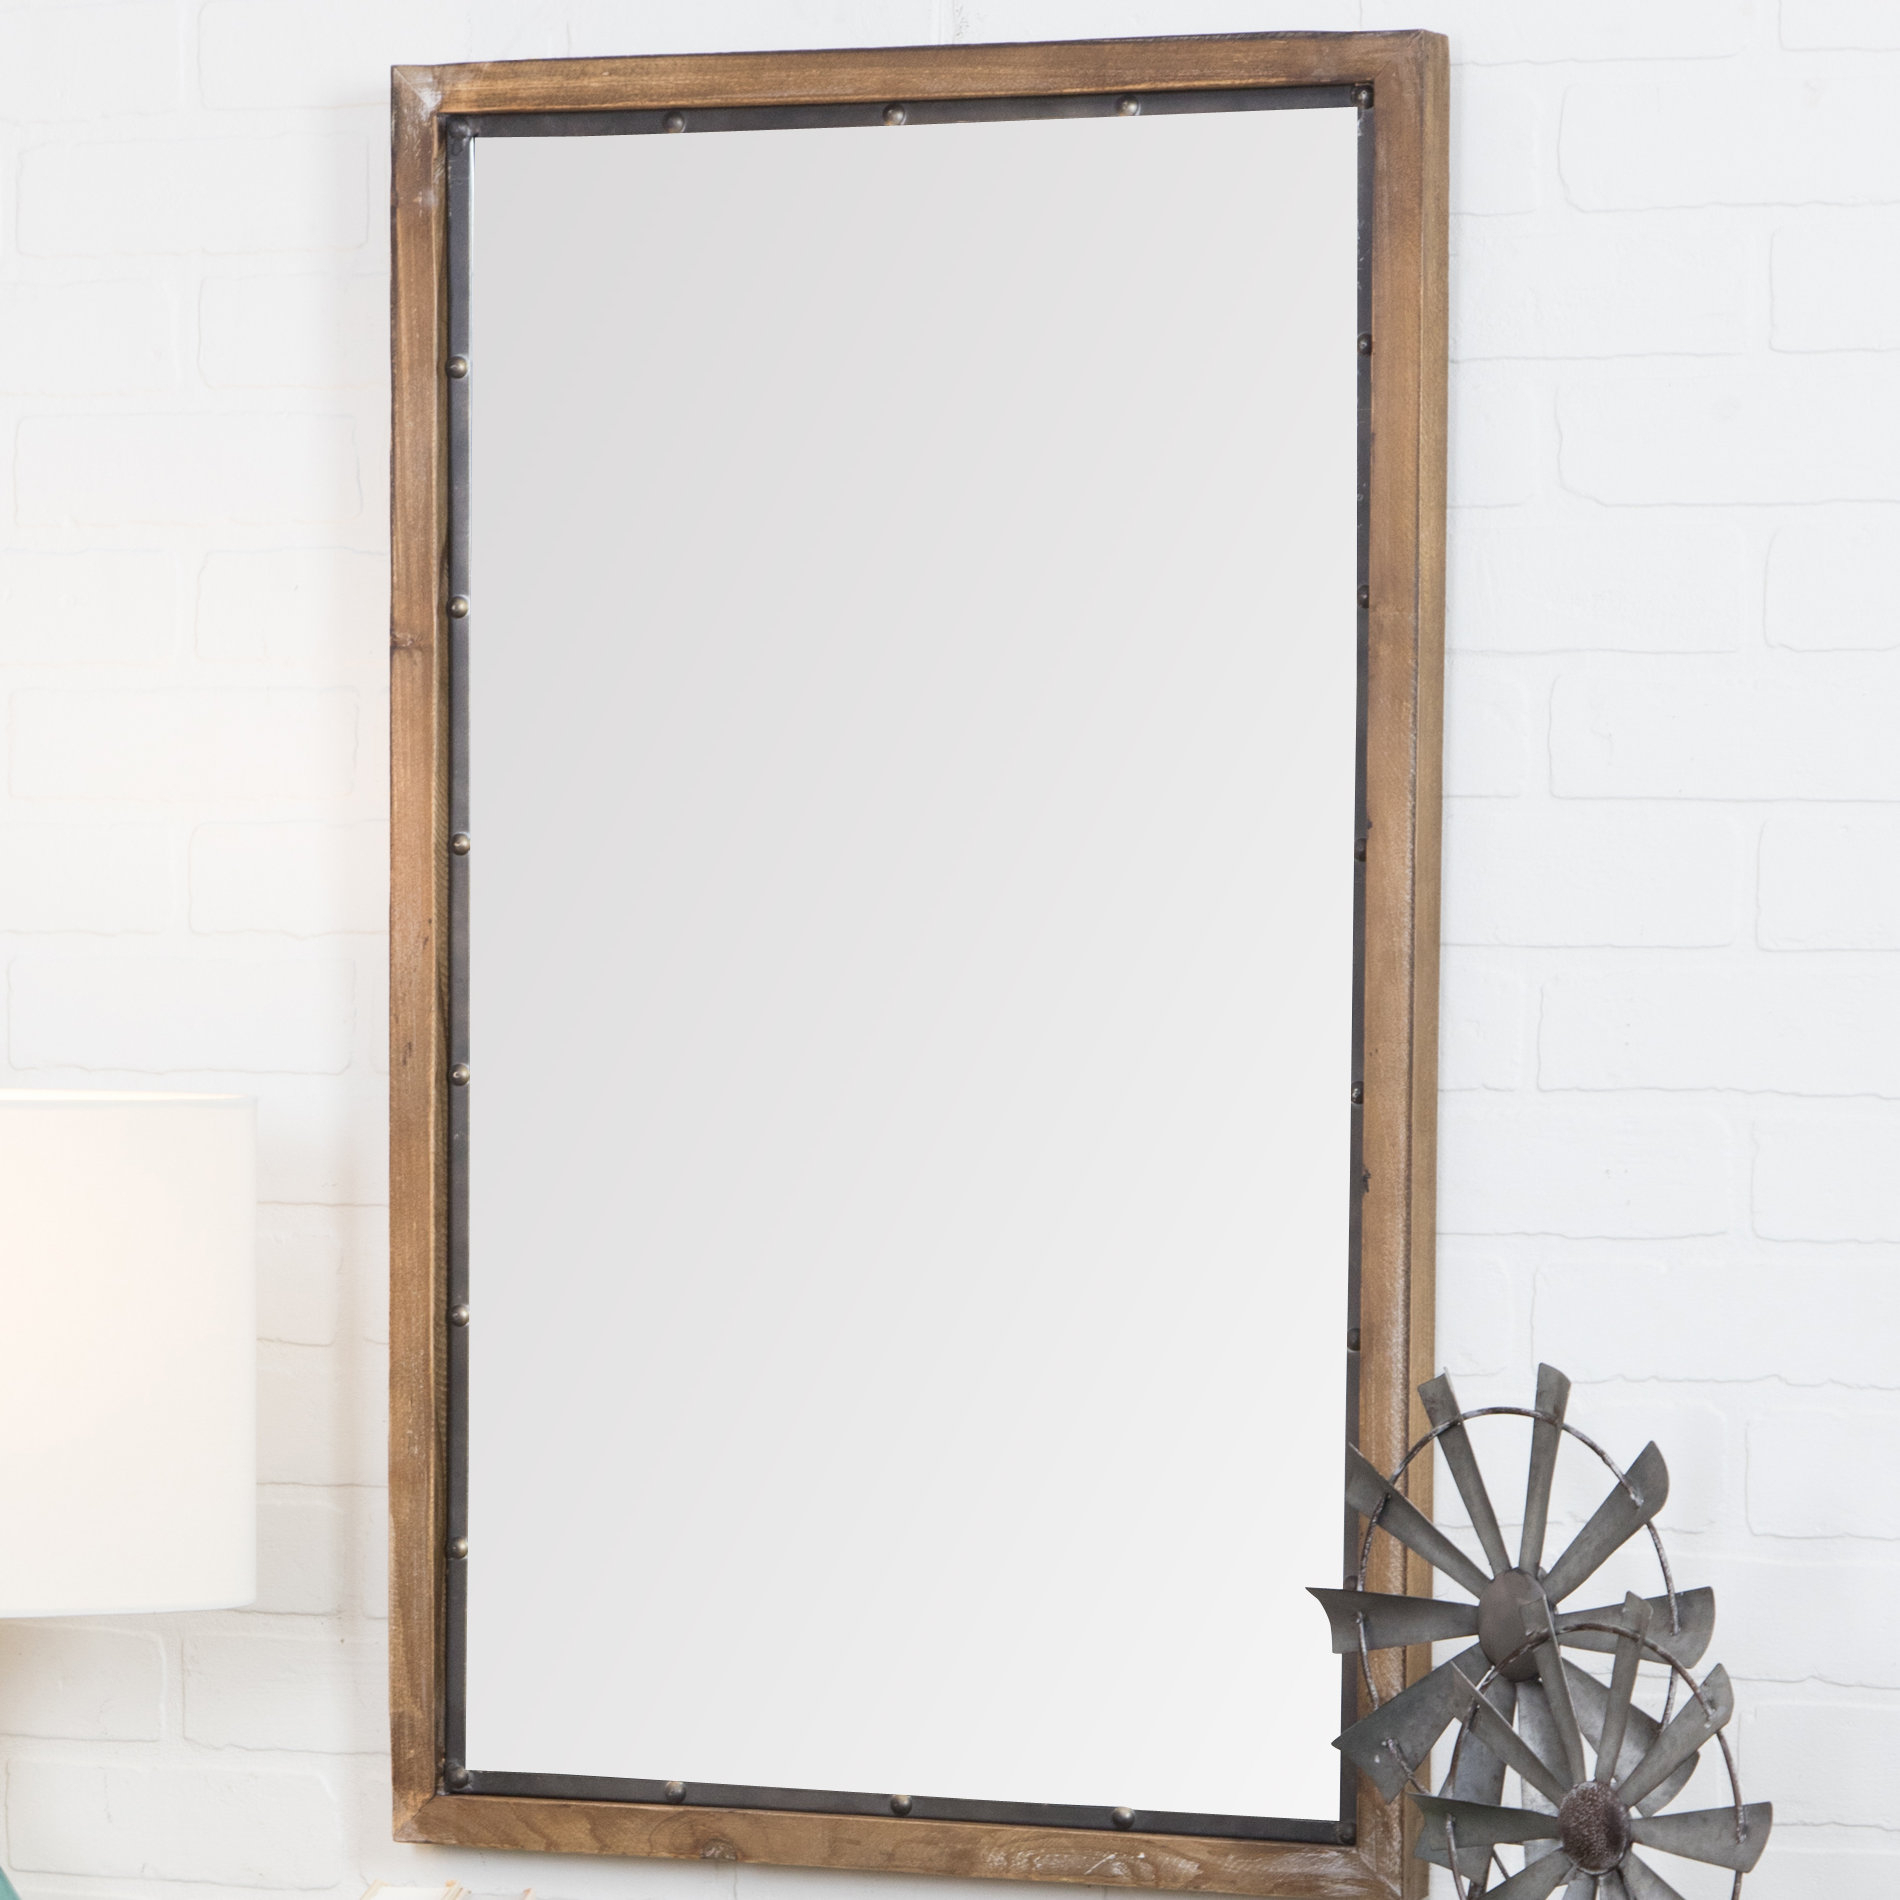 Farmhouse & Rustic Gracie Oaks Wall & Accent Mirrors | Birch Inside Kinley Accent Mirrors (Image 2 of 20)